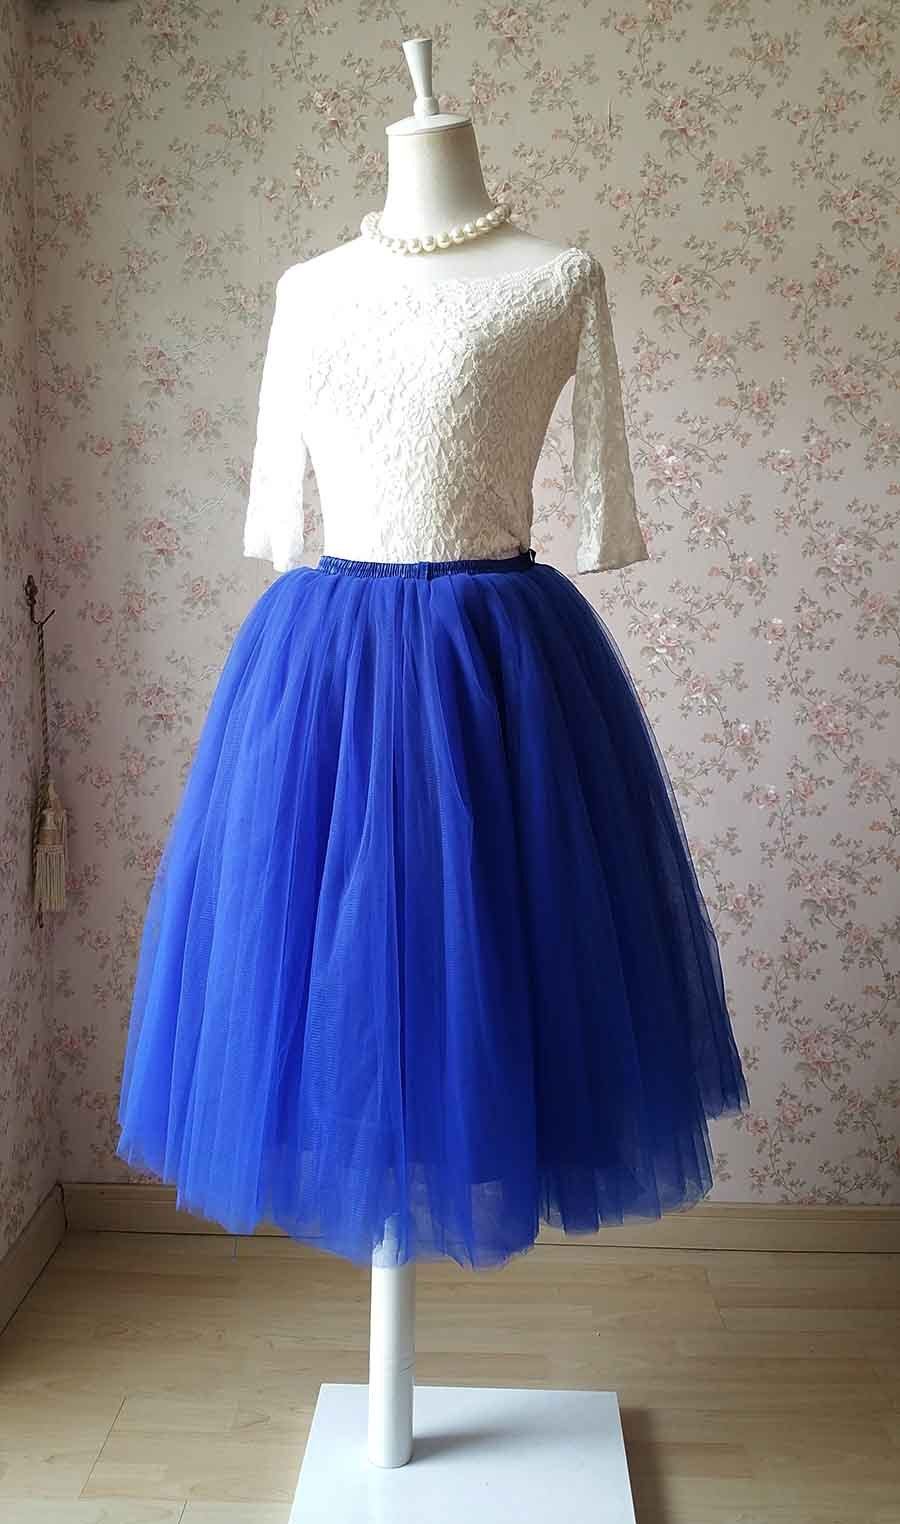 Cobalt Blue Midi Tulle Skirt 6 Layered Tulle Tutu Skirt Blue Ballerina Skirt